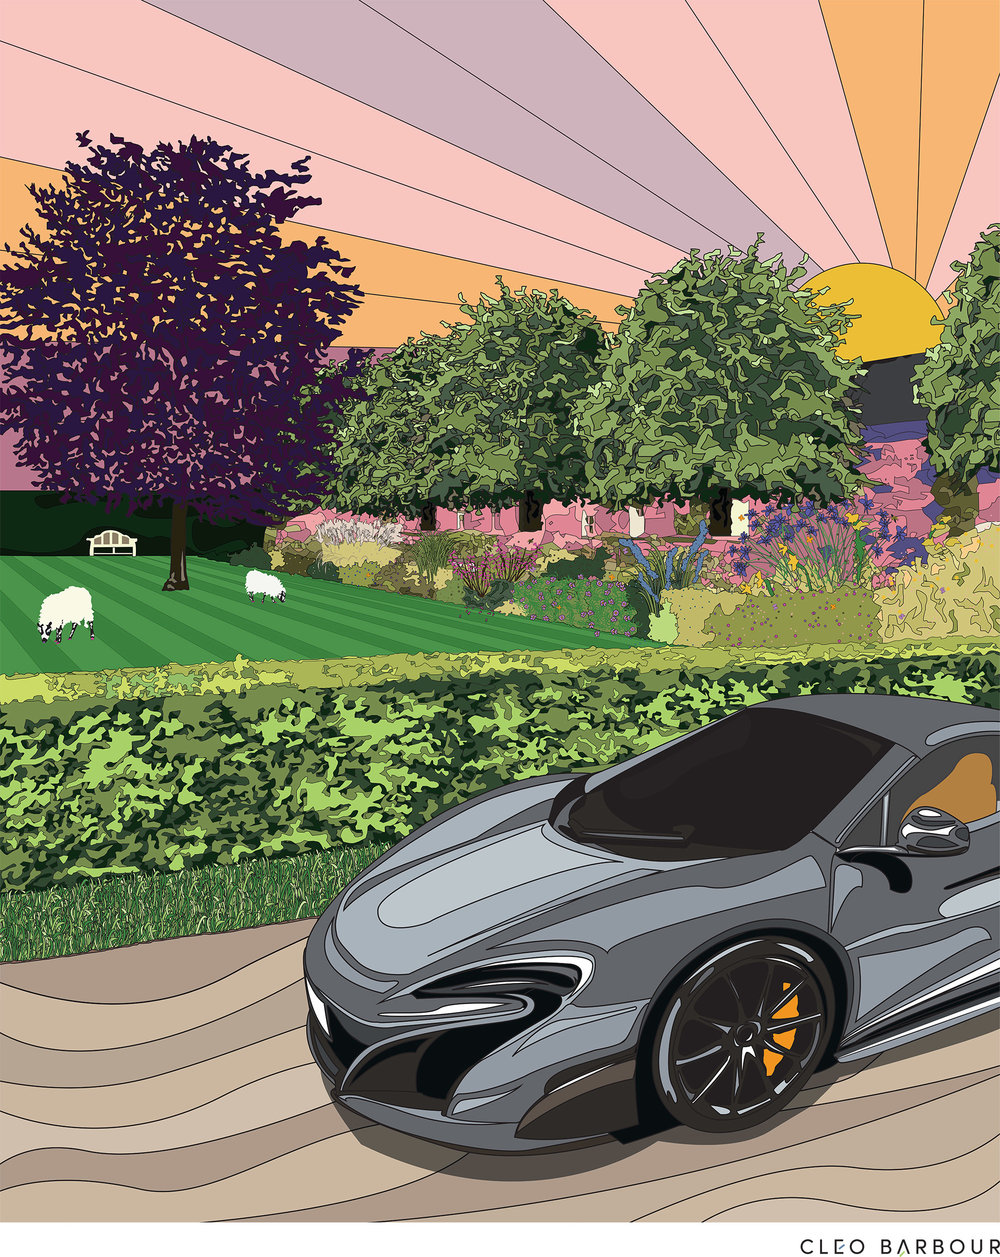 mclaren-portrait-garden-contemporary